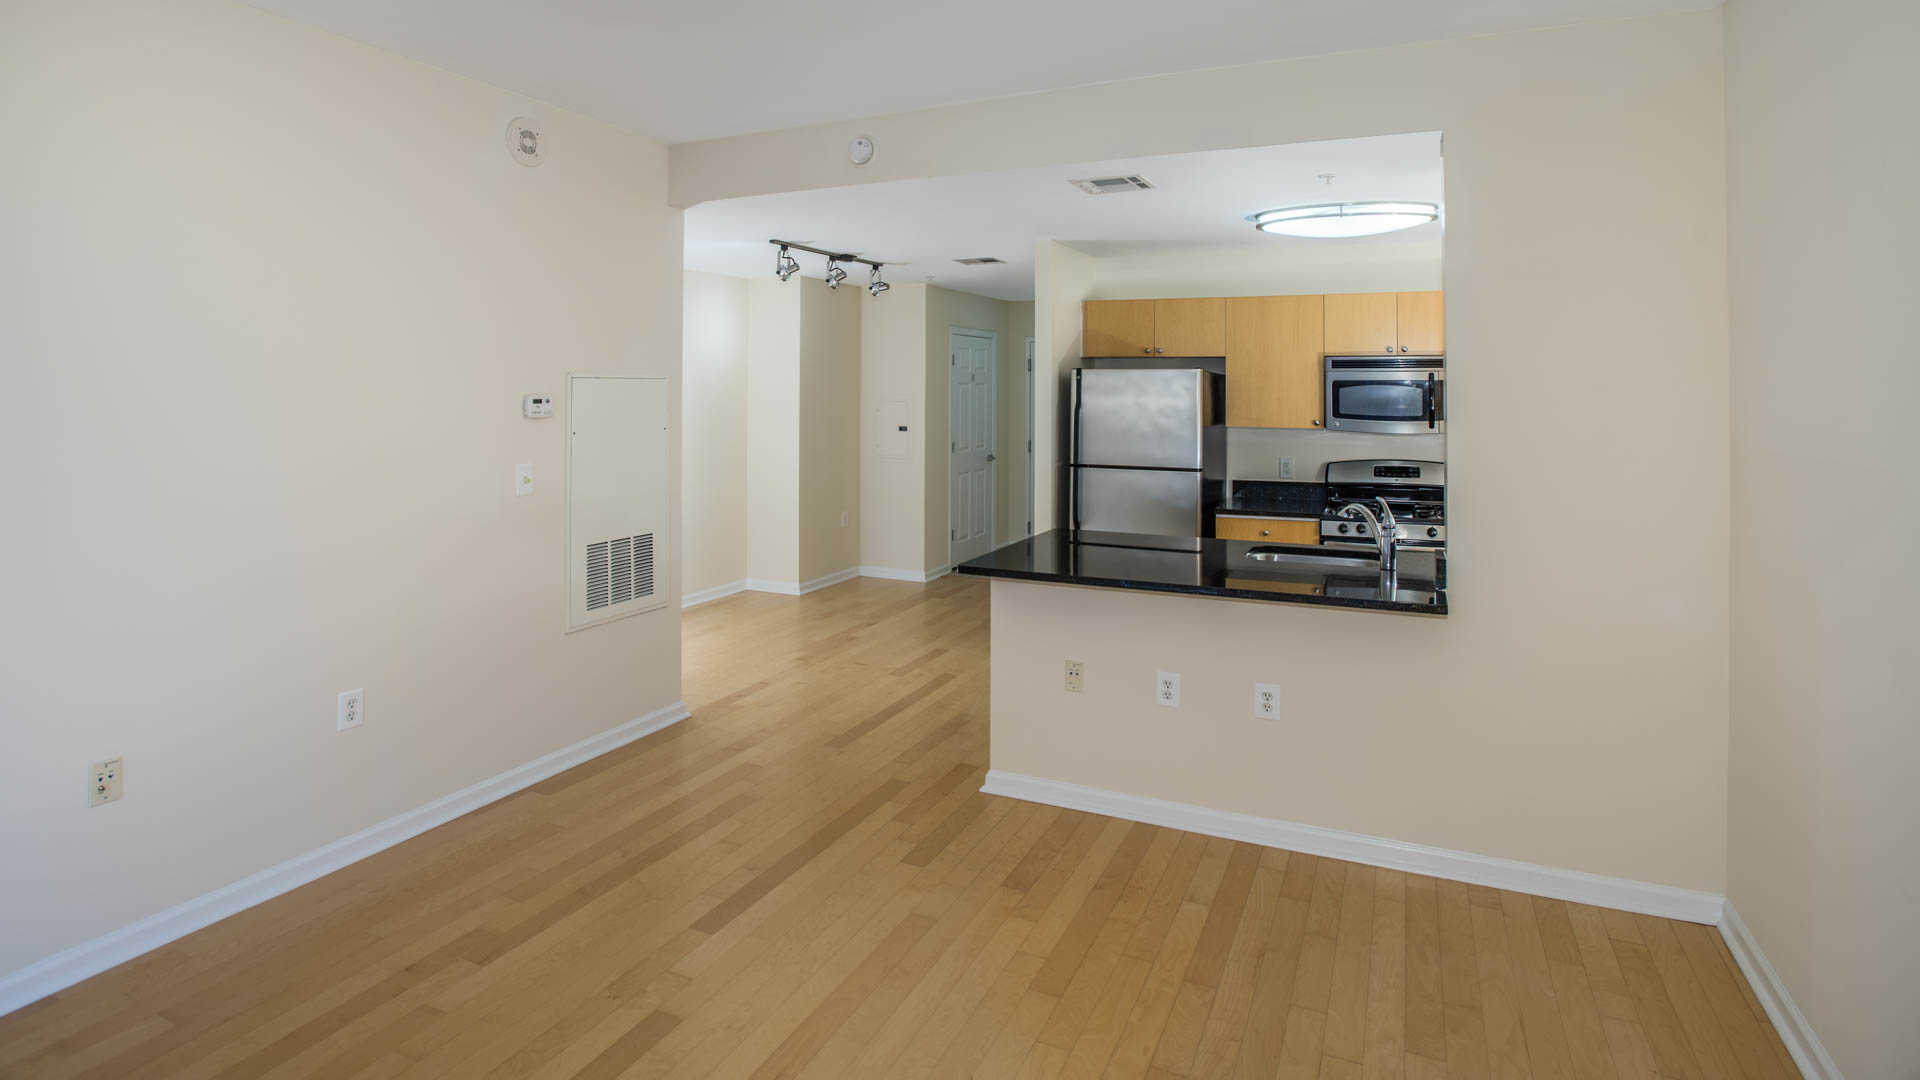 the reserve at clarendon centre apartments in arlington - 3000 n